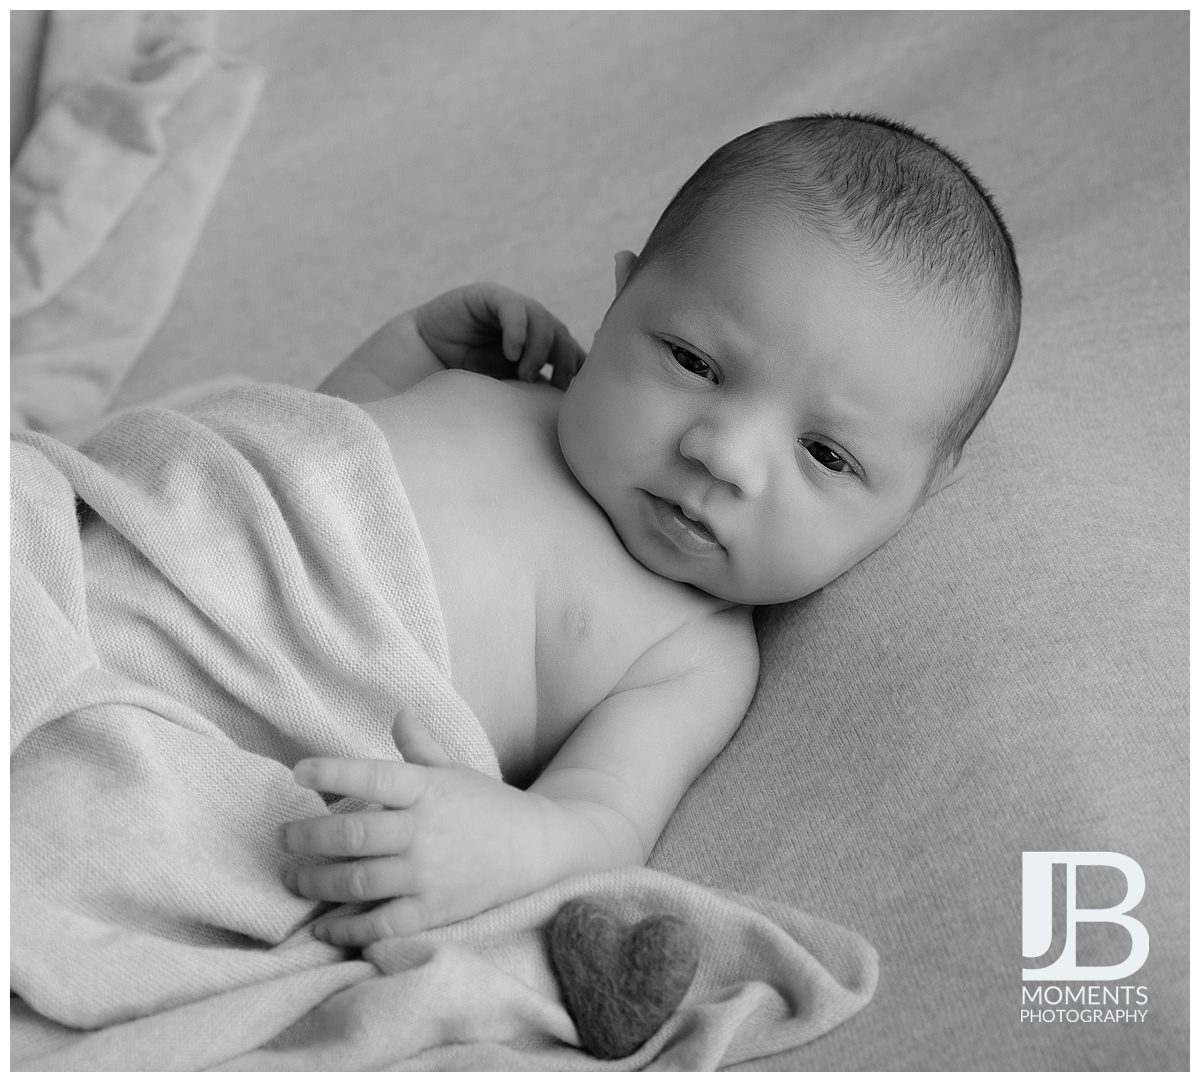 Baby Girl - JB Moments Photography